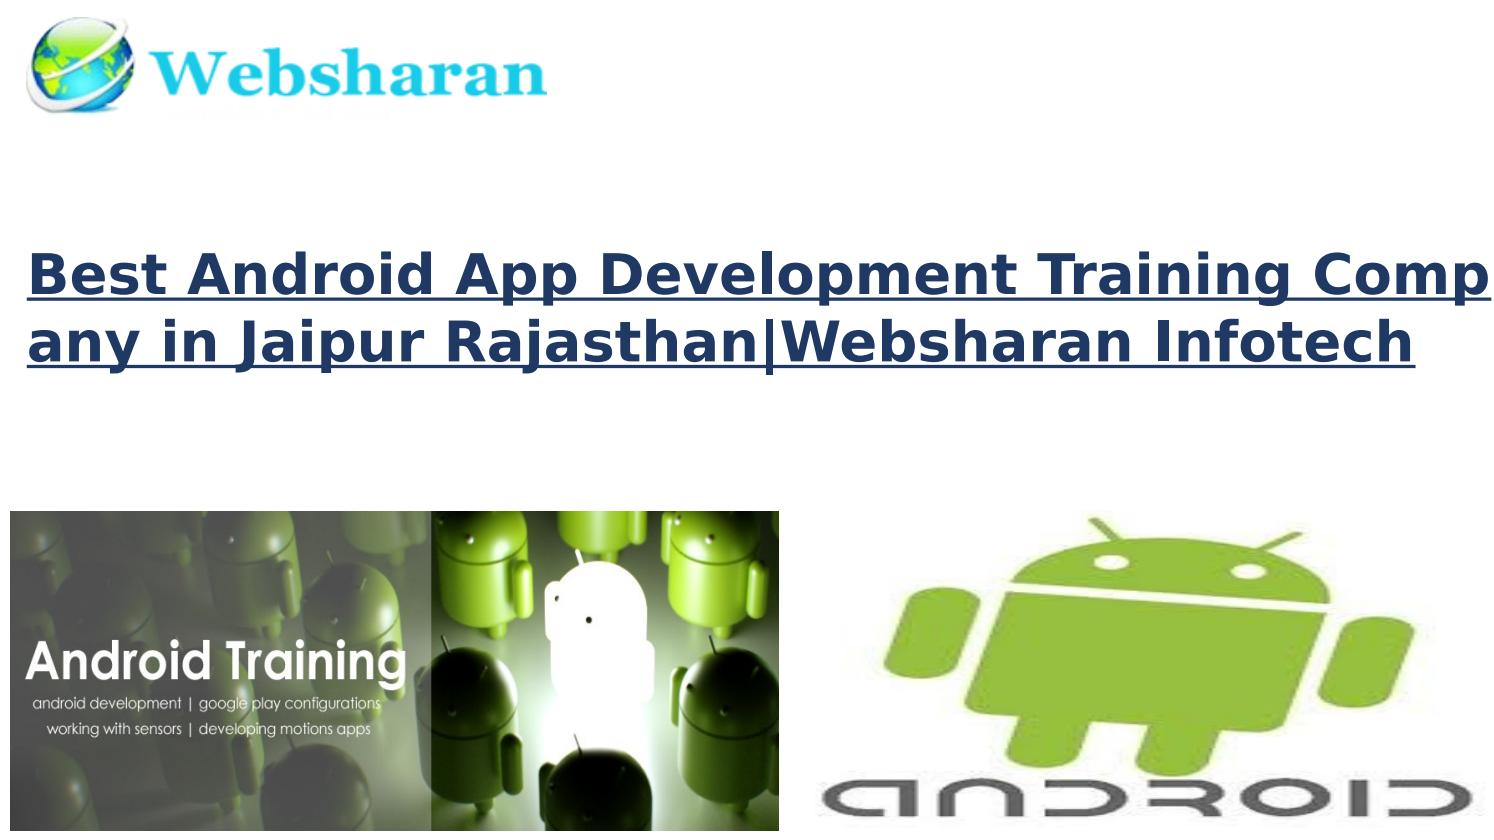 Best android app development training company in jaipur by